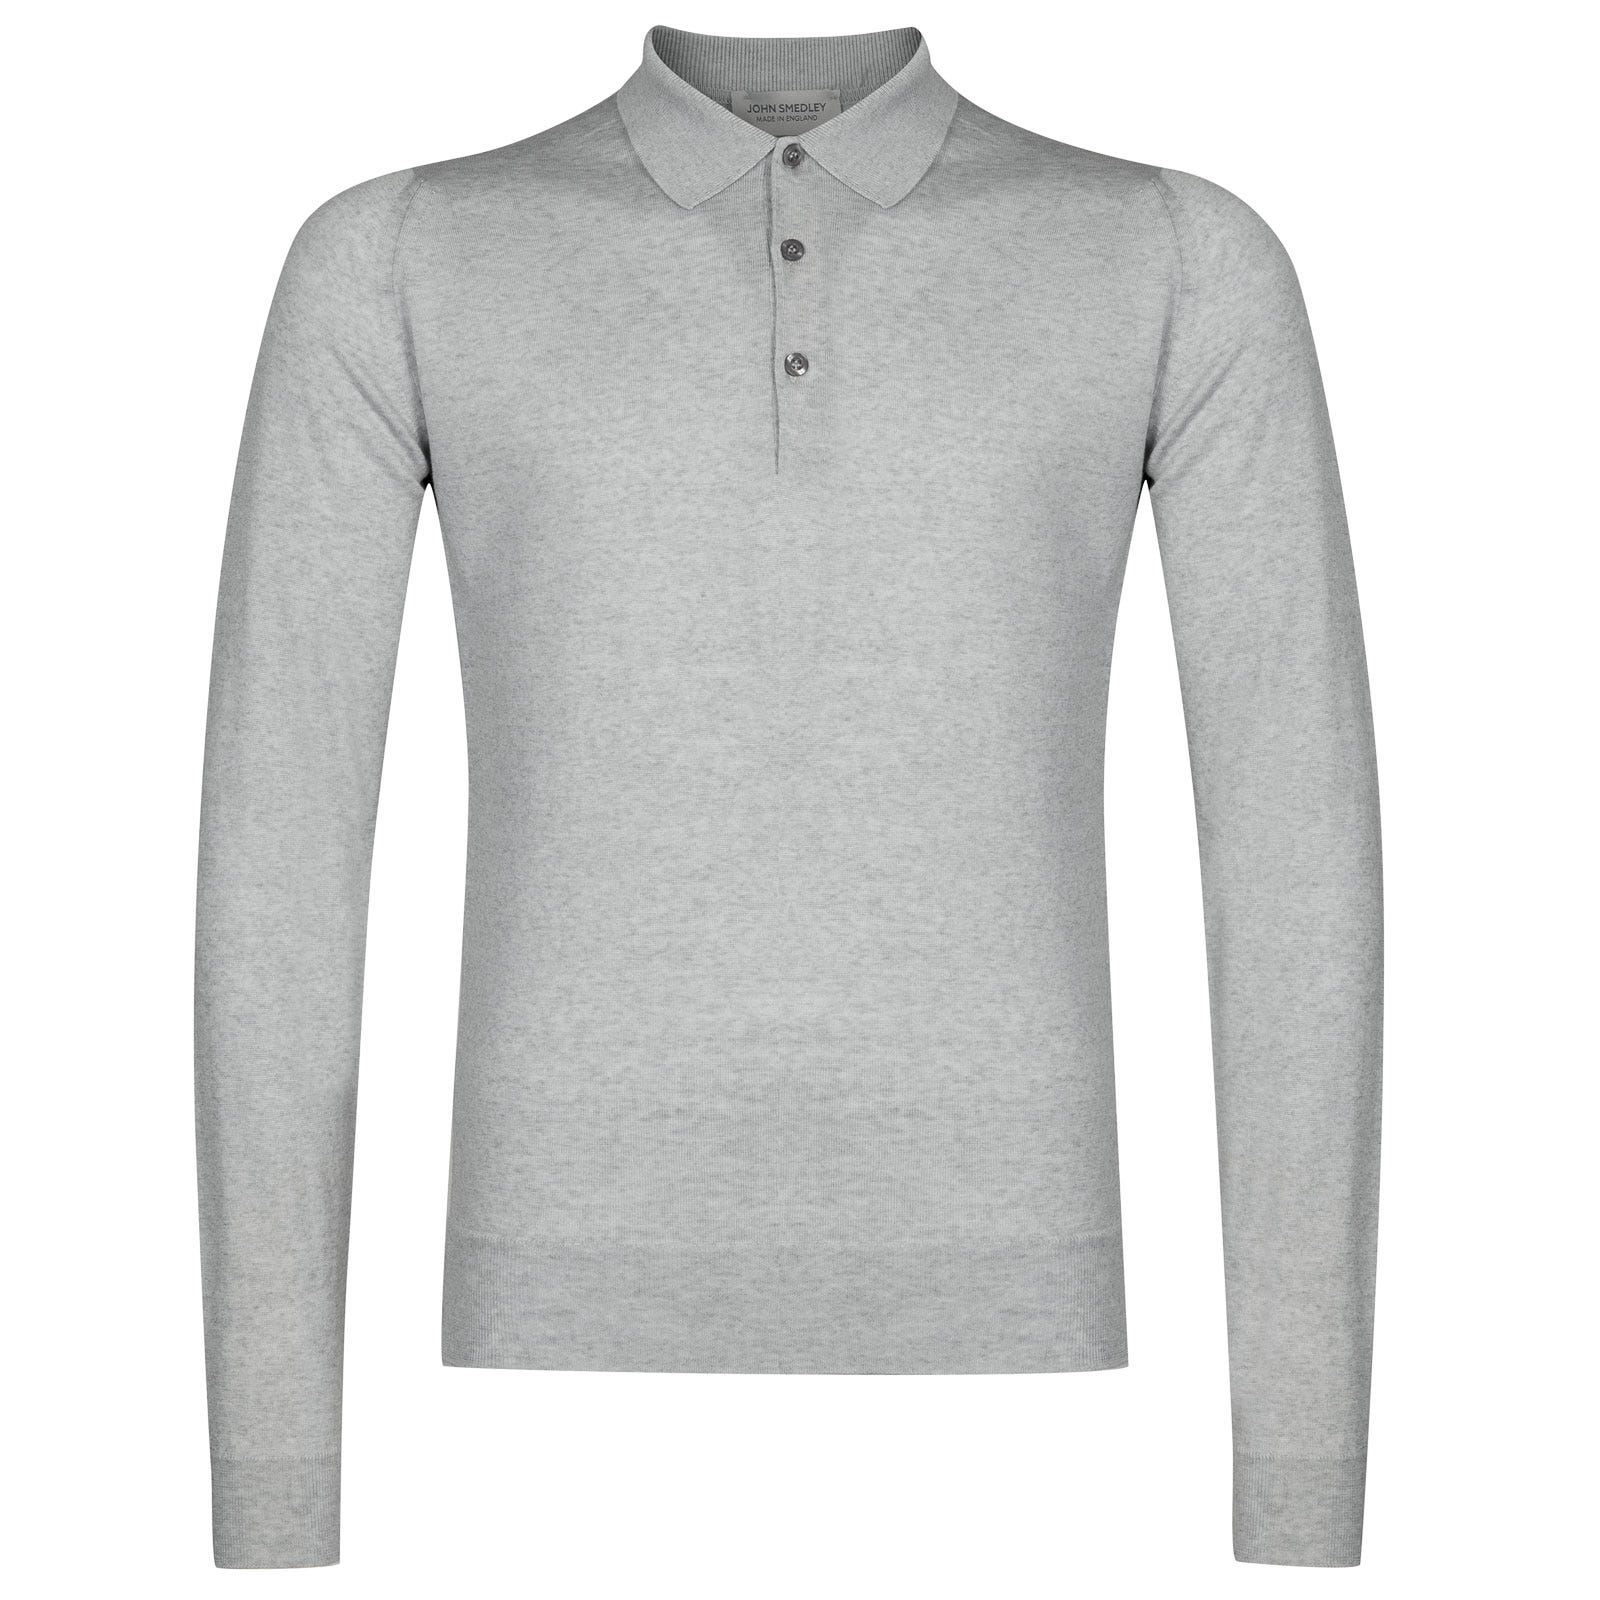 John Smedley belper Merino Wool Shirt in Bardot Grey-XL